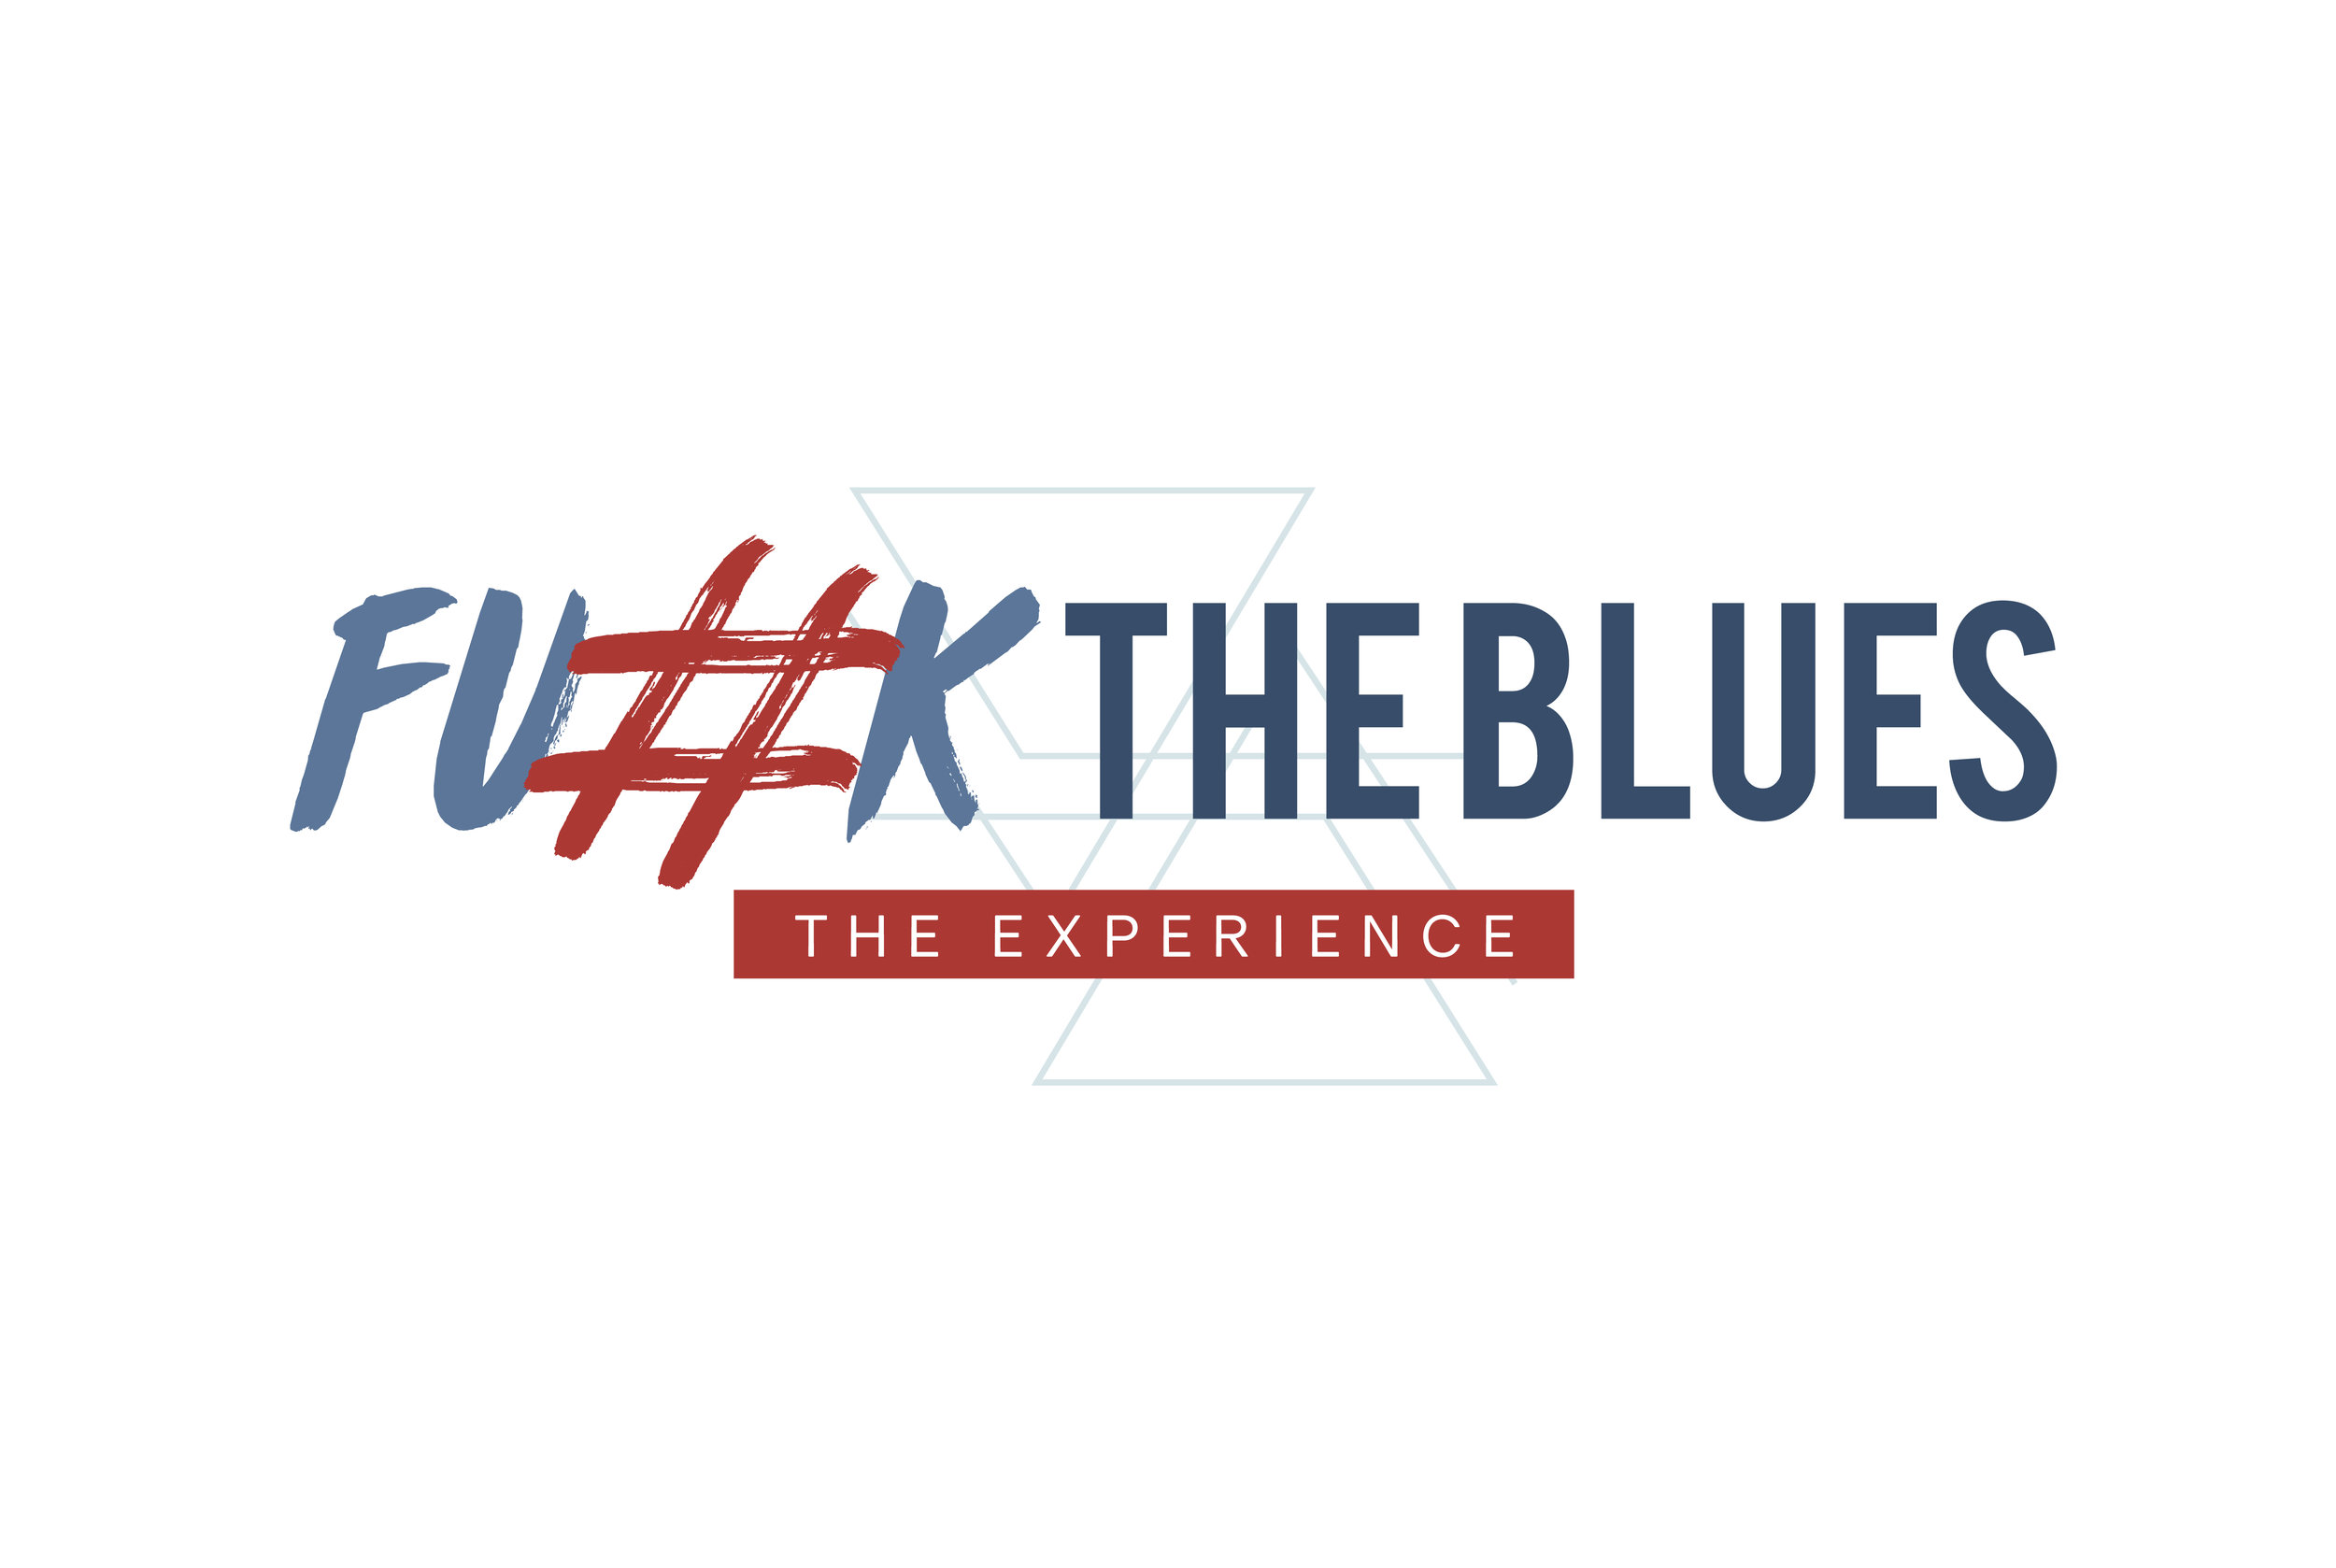 fuk_the_blues_logo (1).jpg